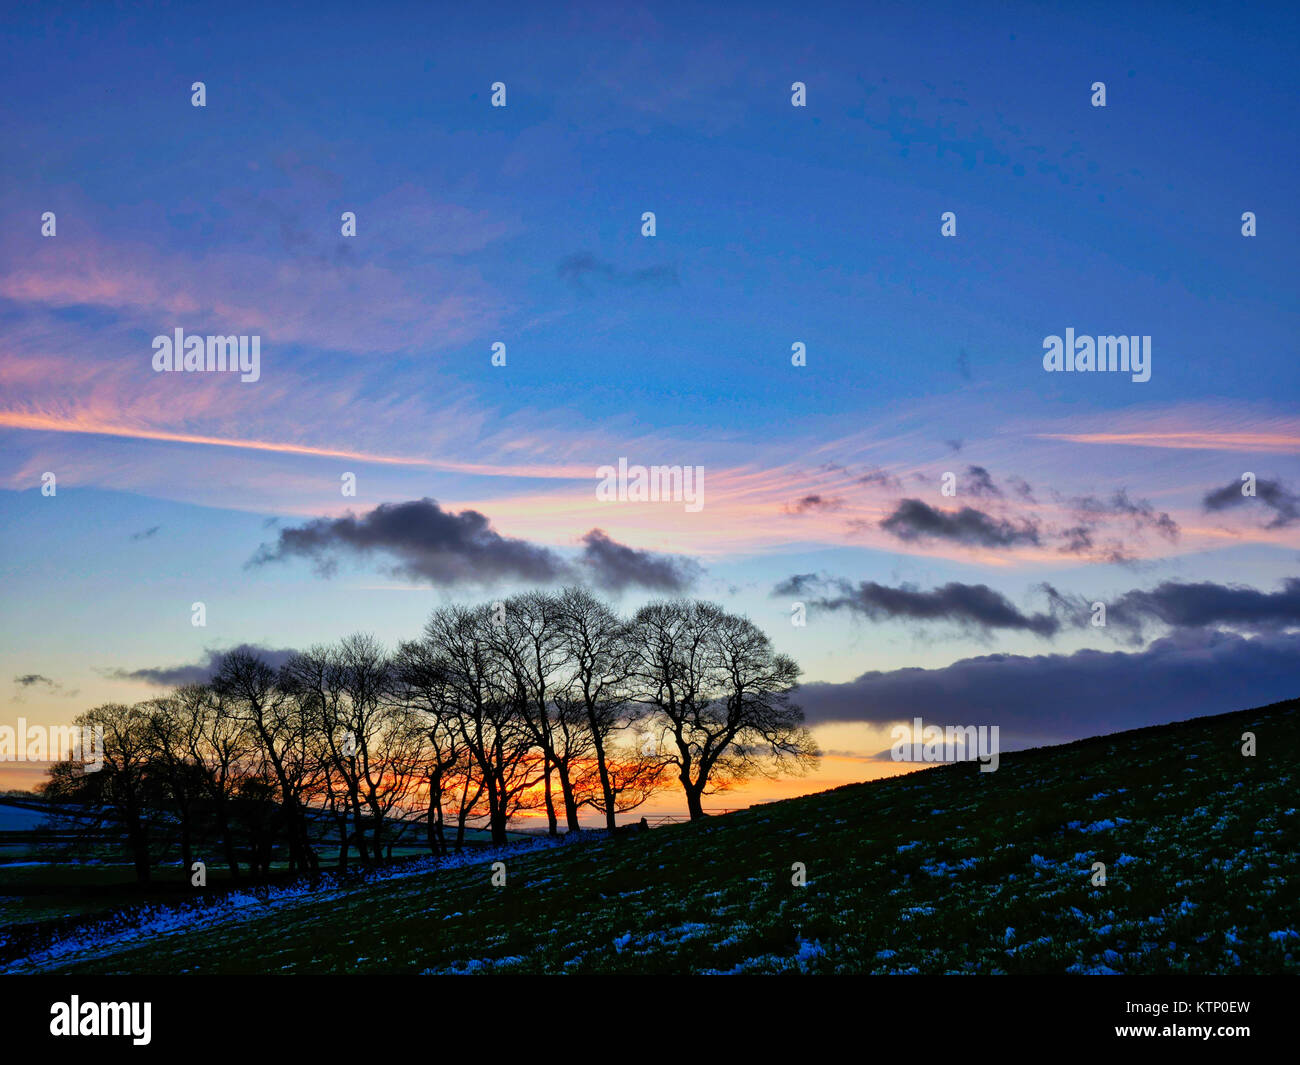 Moat Low, Derbyshire. 28th Dec, 2017. UK Weather: Near Moat Low Derbyshire spectacular sunset over the snow cappedStock Photo